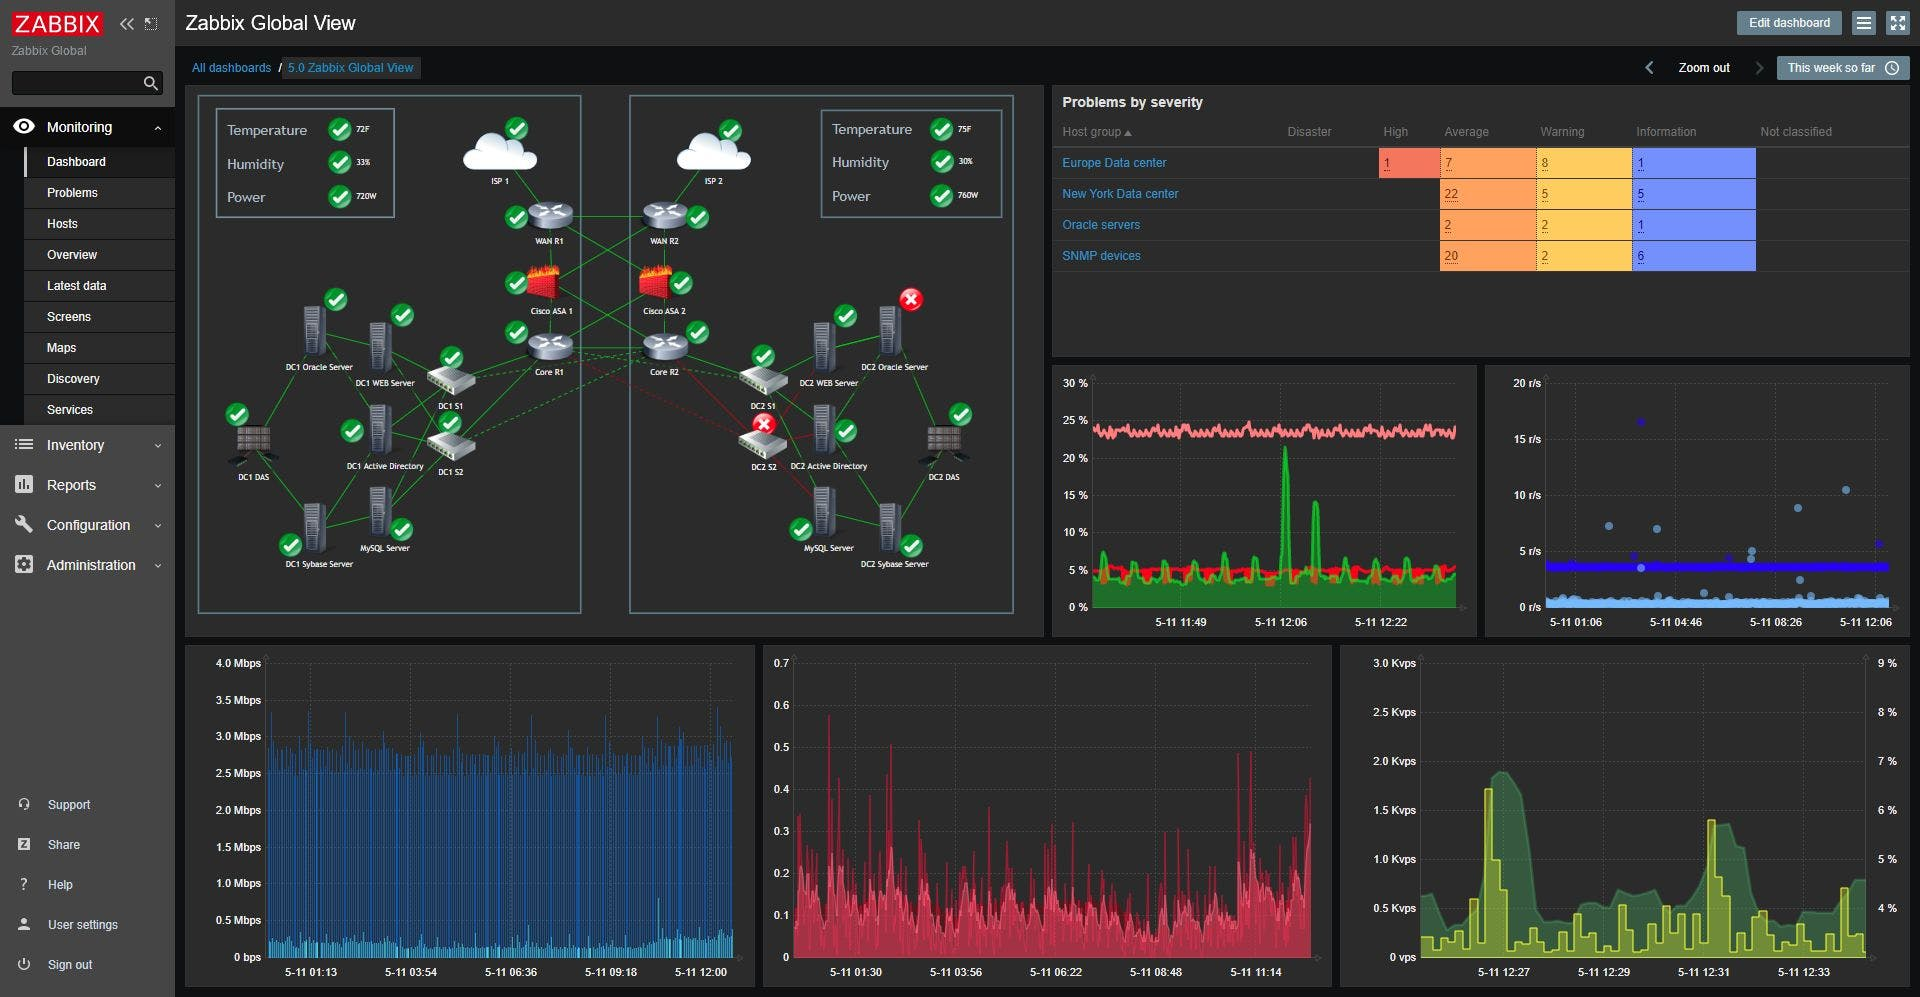 zabbix_dashboard_v50_dark.jpg